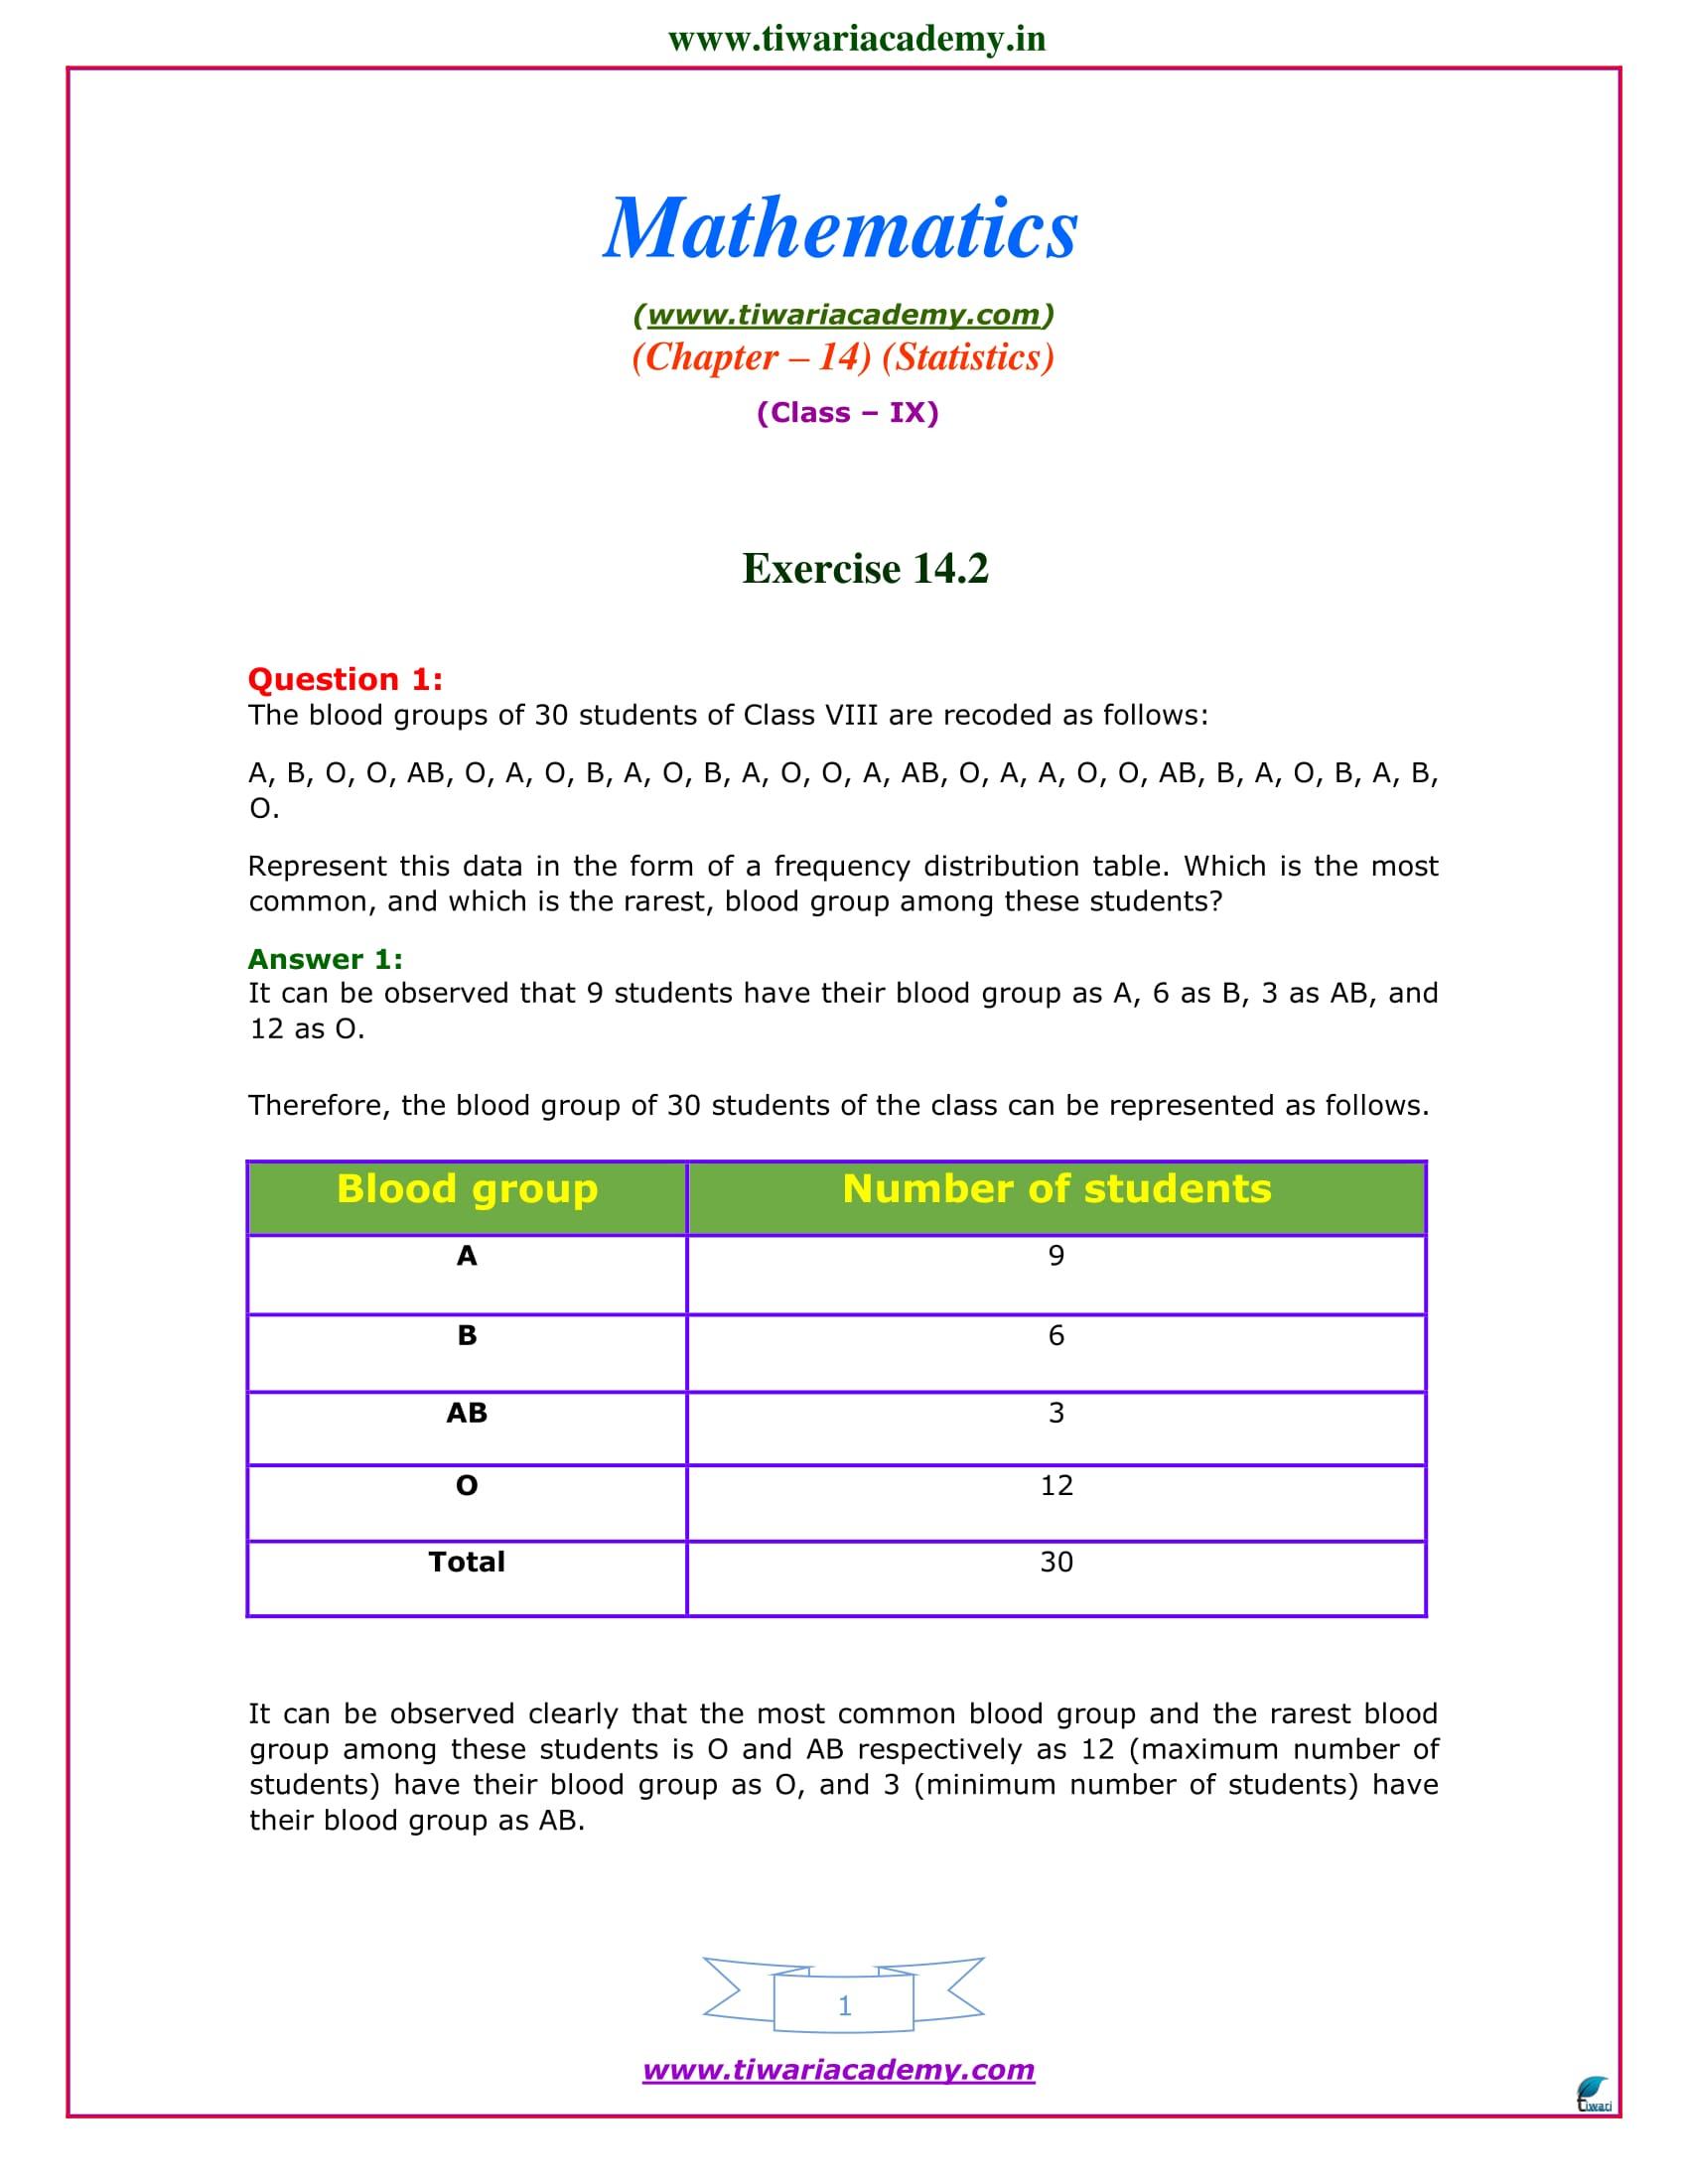 NCERT Solutions for Class 9 Maths Chapter 14 Exercise 14.2